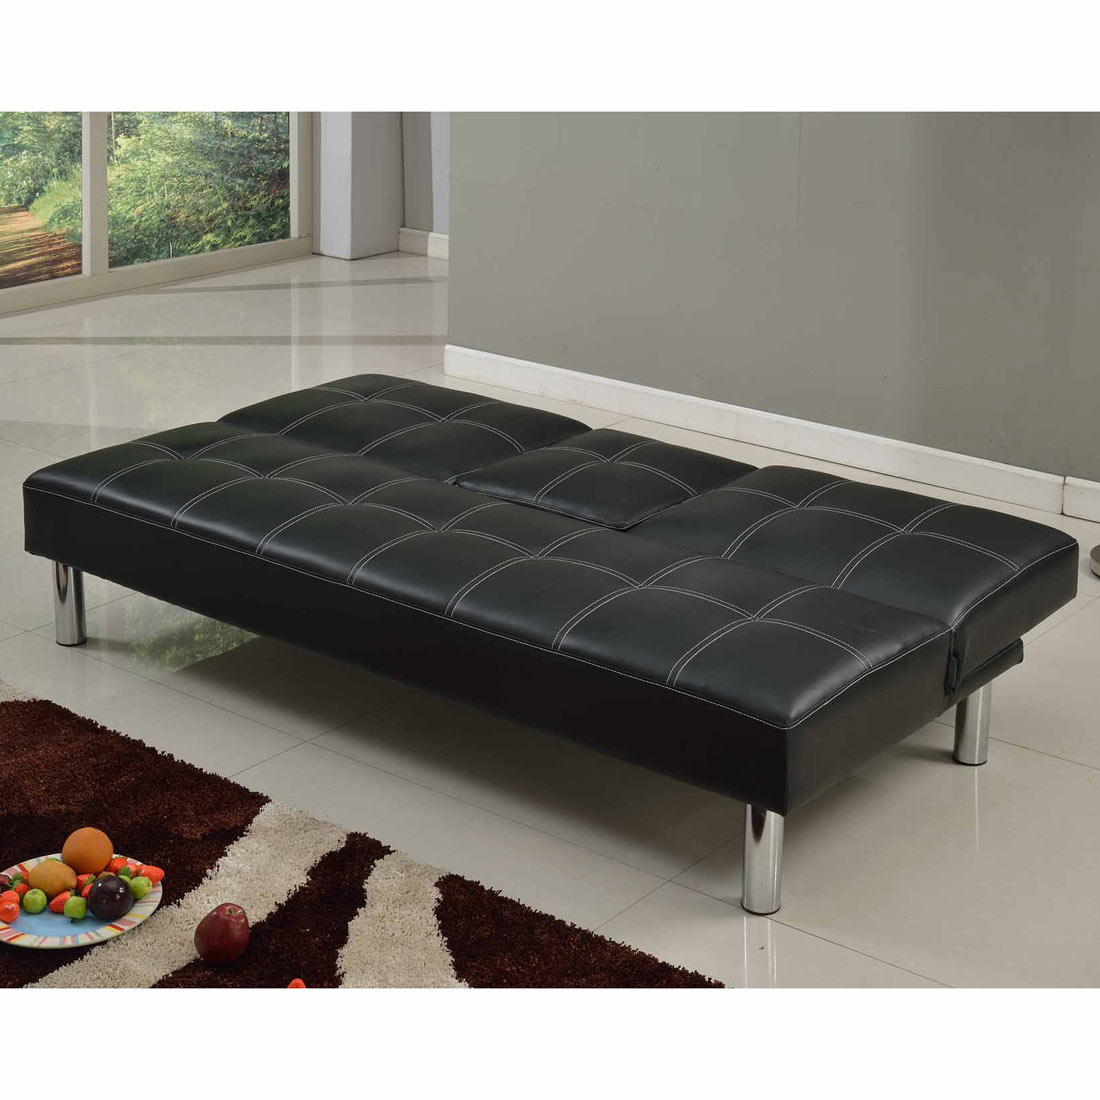 Cinemo 3 Seater Black Sofa Bed Faux Leather W Fold Down Table Chrome Legs Ebay